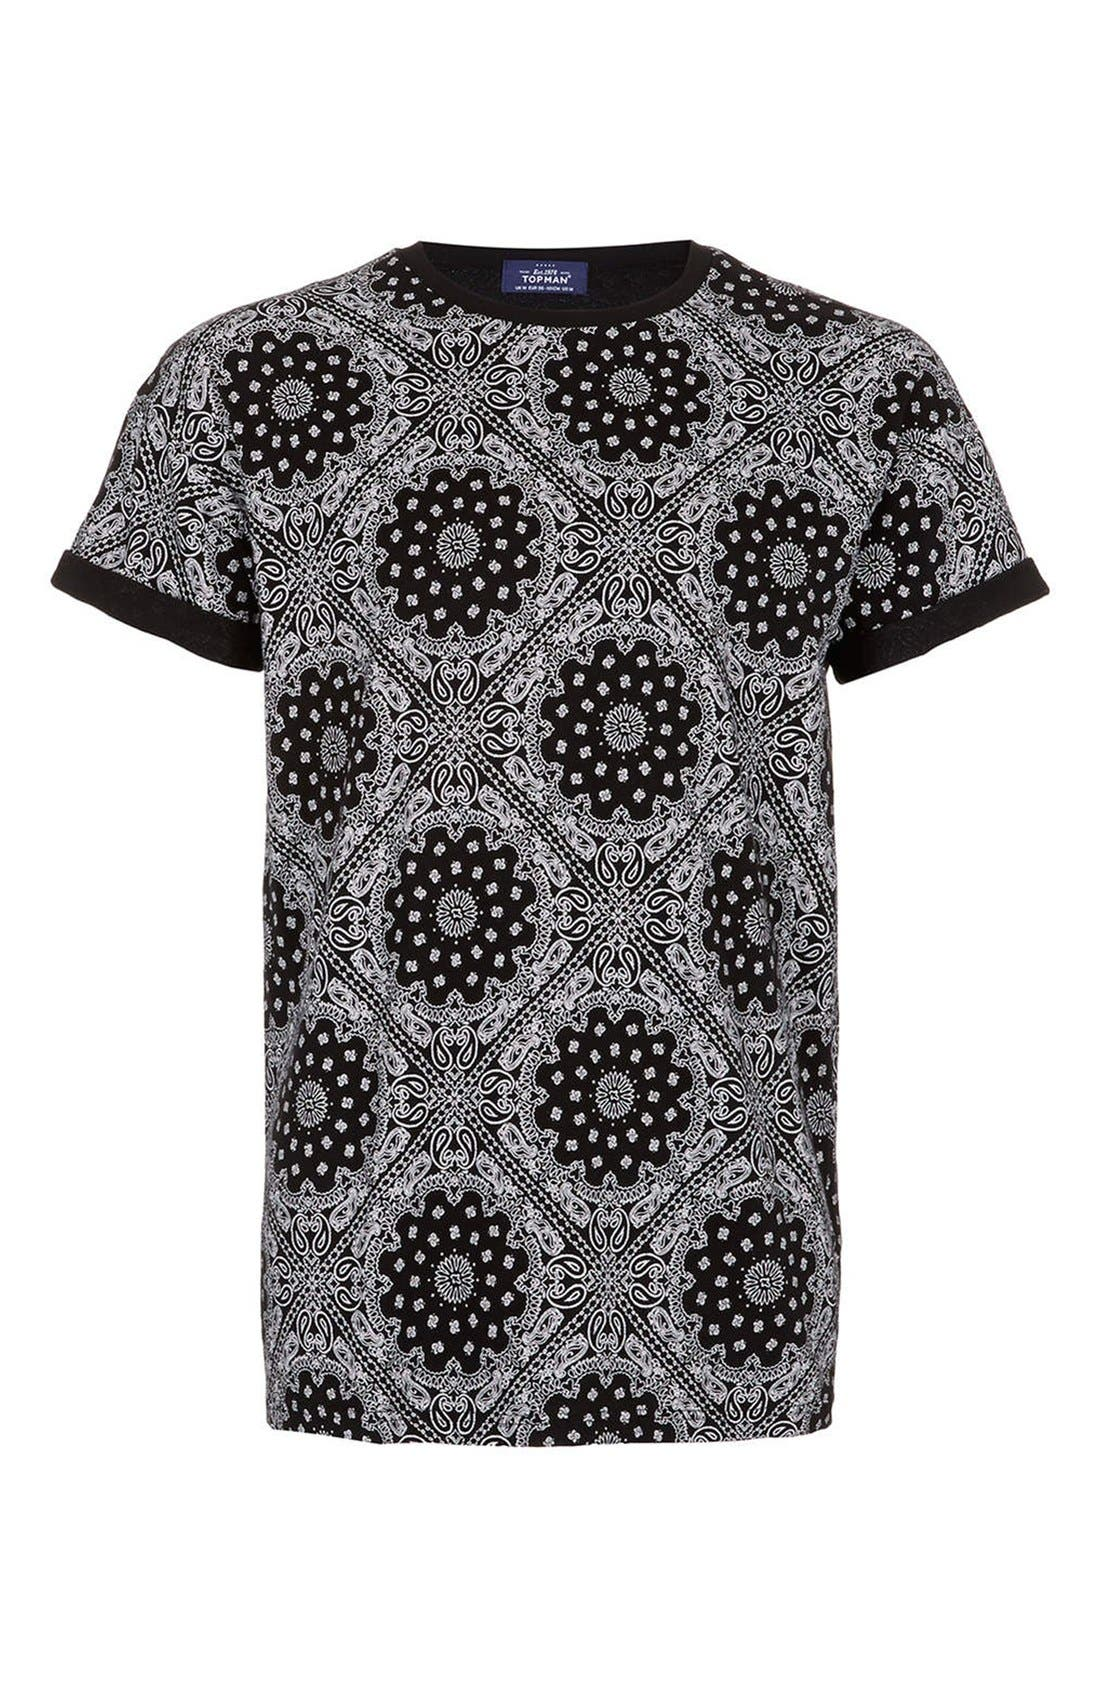 Alternate Image 1 Selected - Topman Bandana Print Cotton Tee